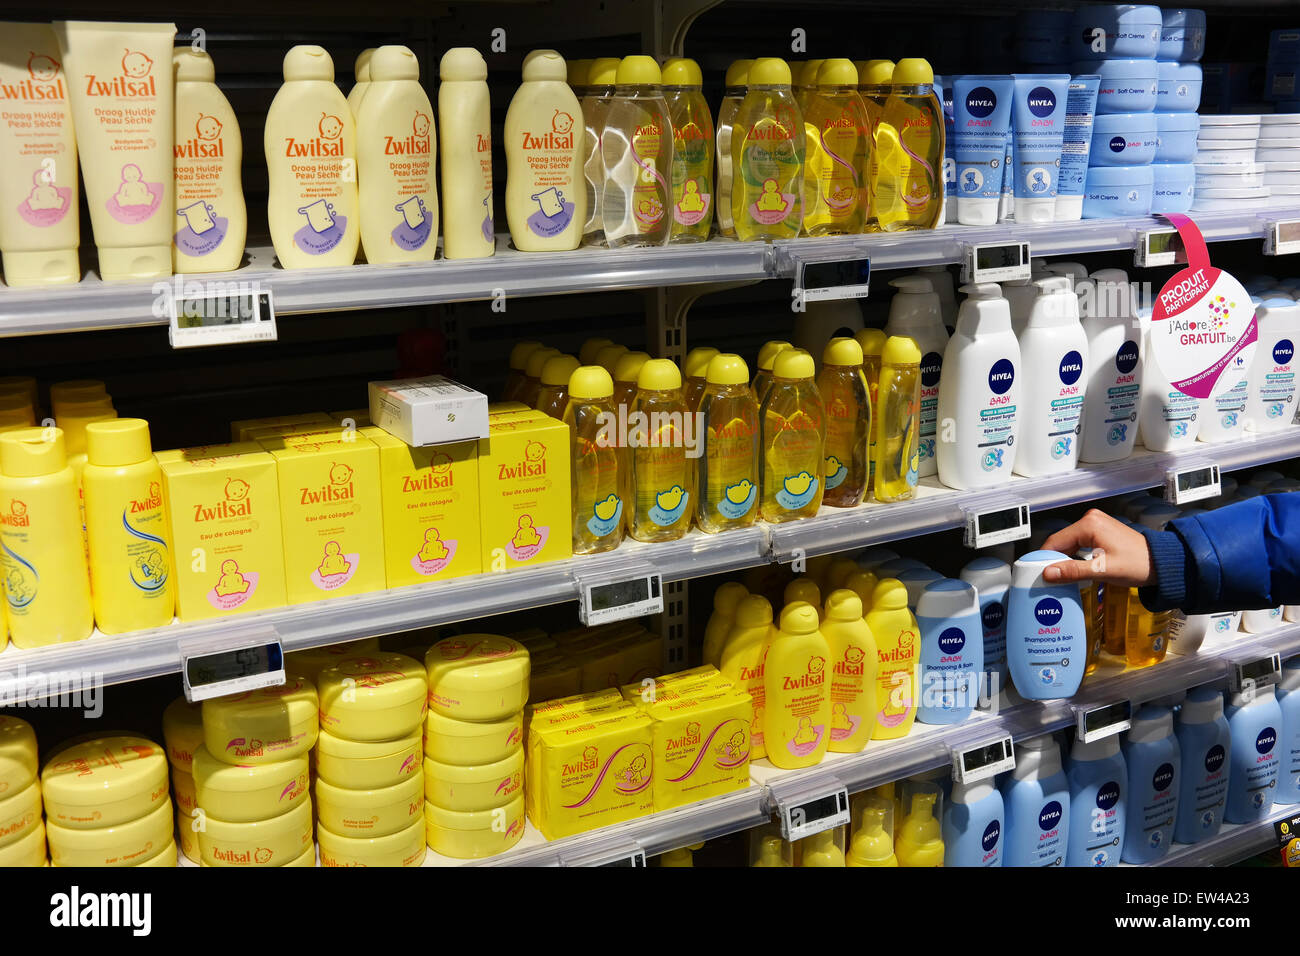 MALMEDY, BELGIUM - MAY 2015: Aisle with a variety of baby care products in a Carrefour Hypermarket. - Stock Image